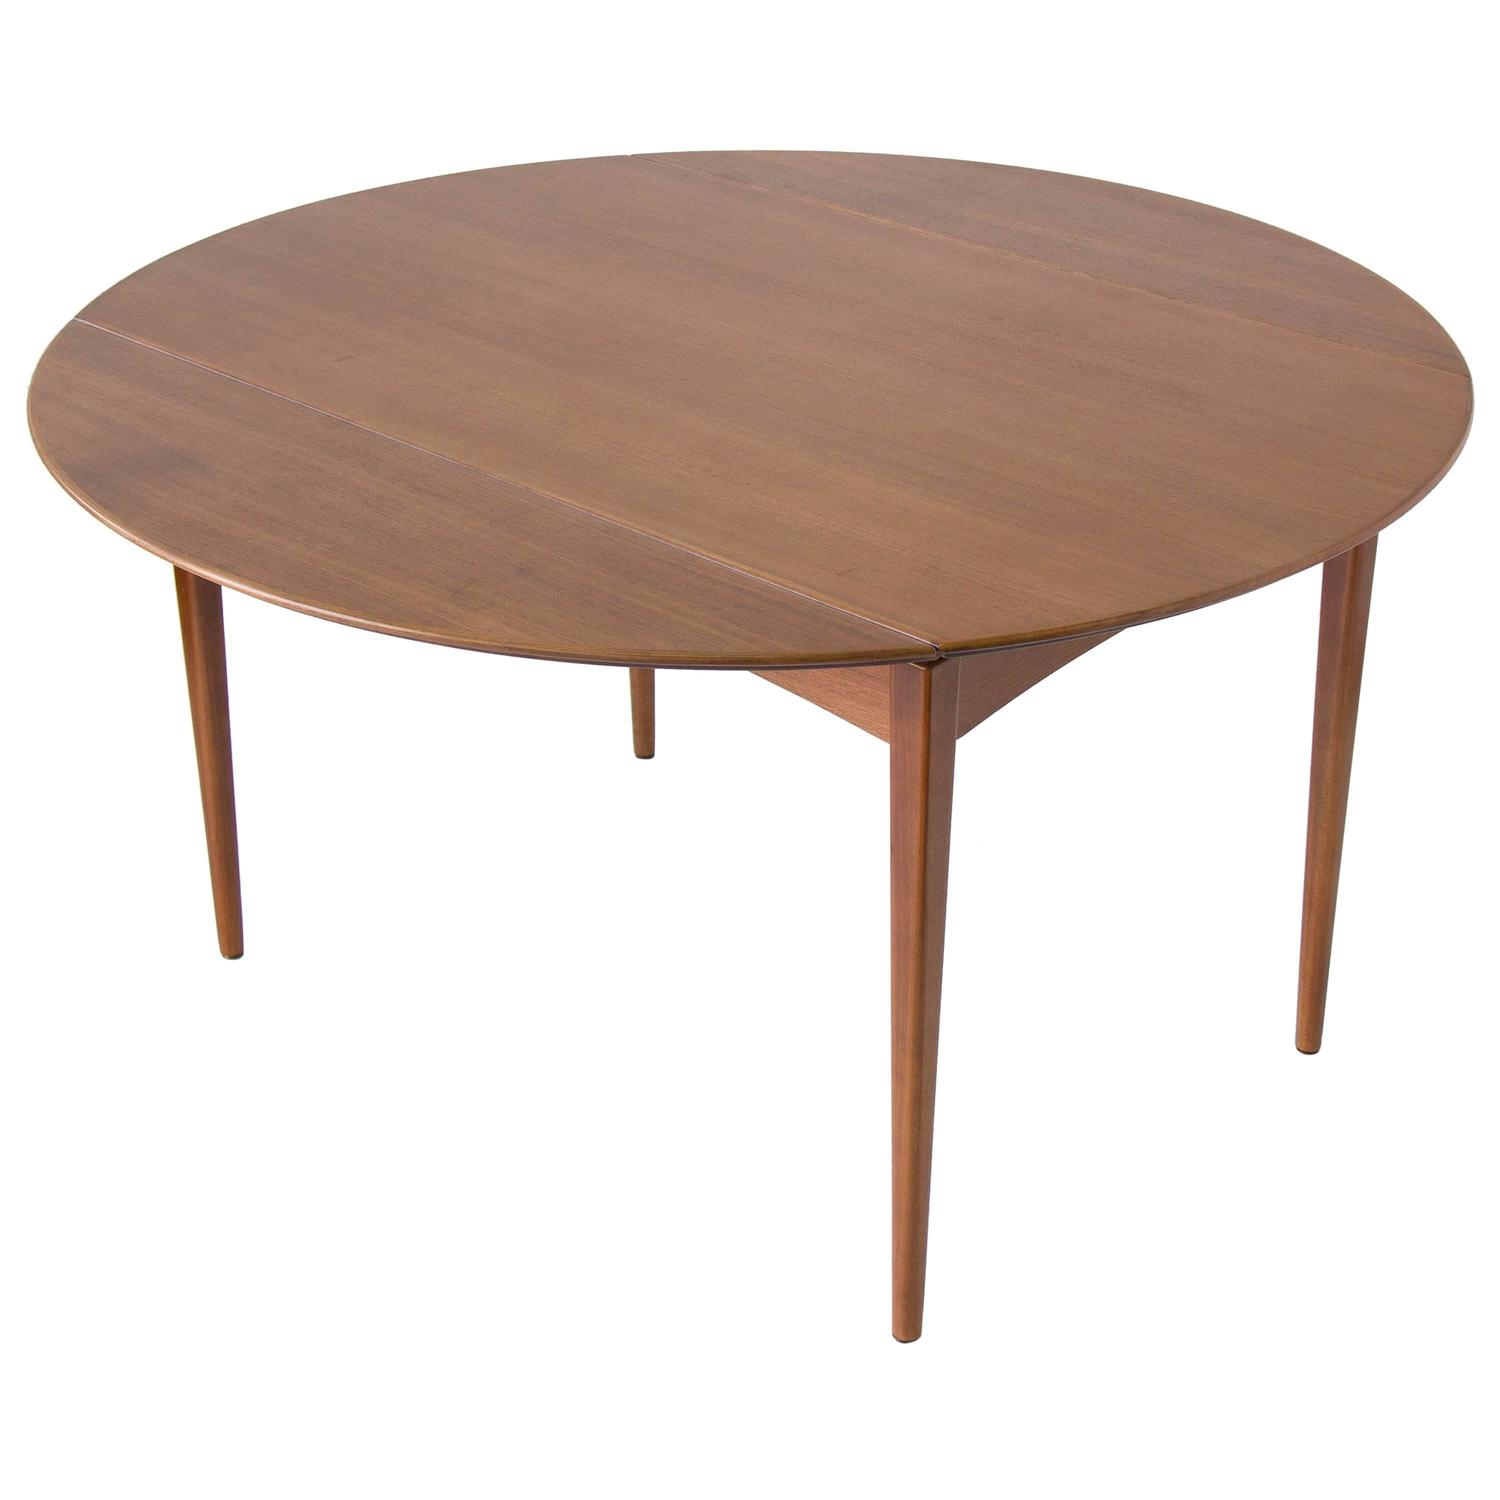 Drop leaf dining room table harden furniture dining room for Dining room tables drop leaf